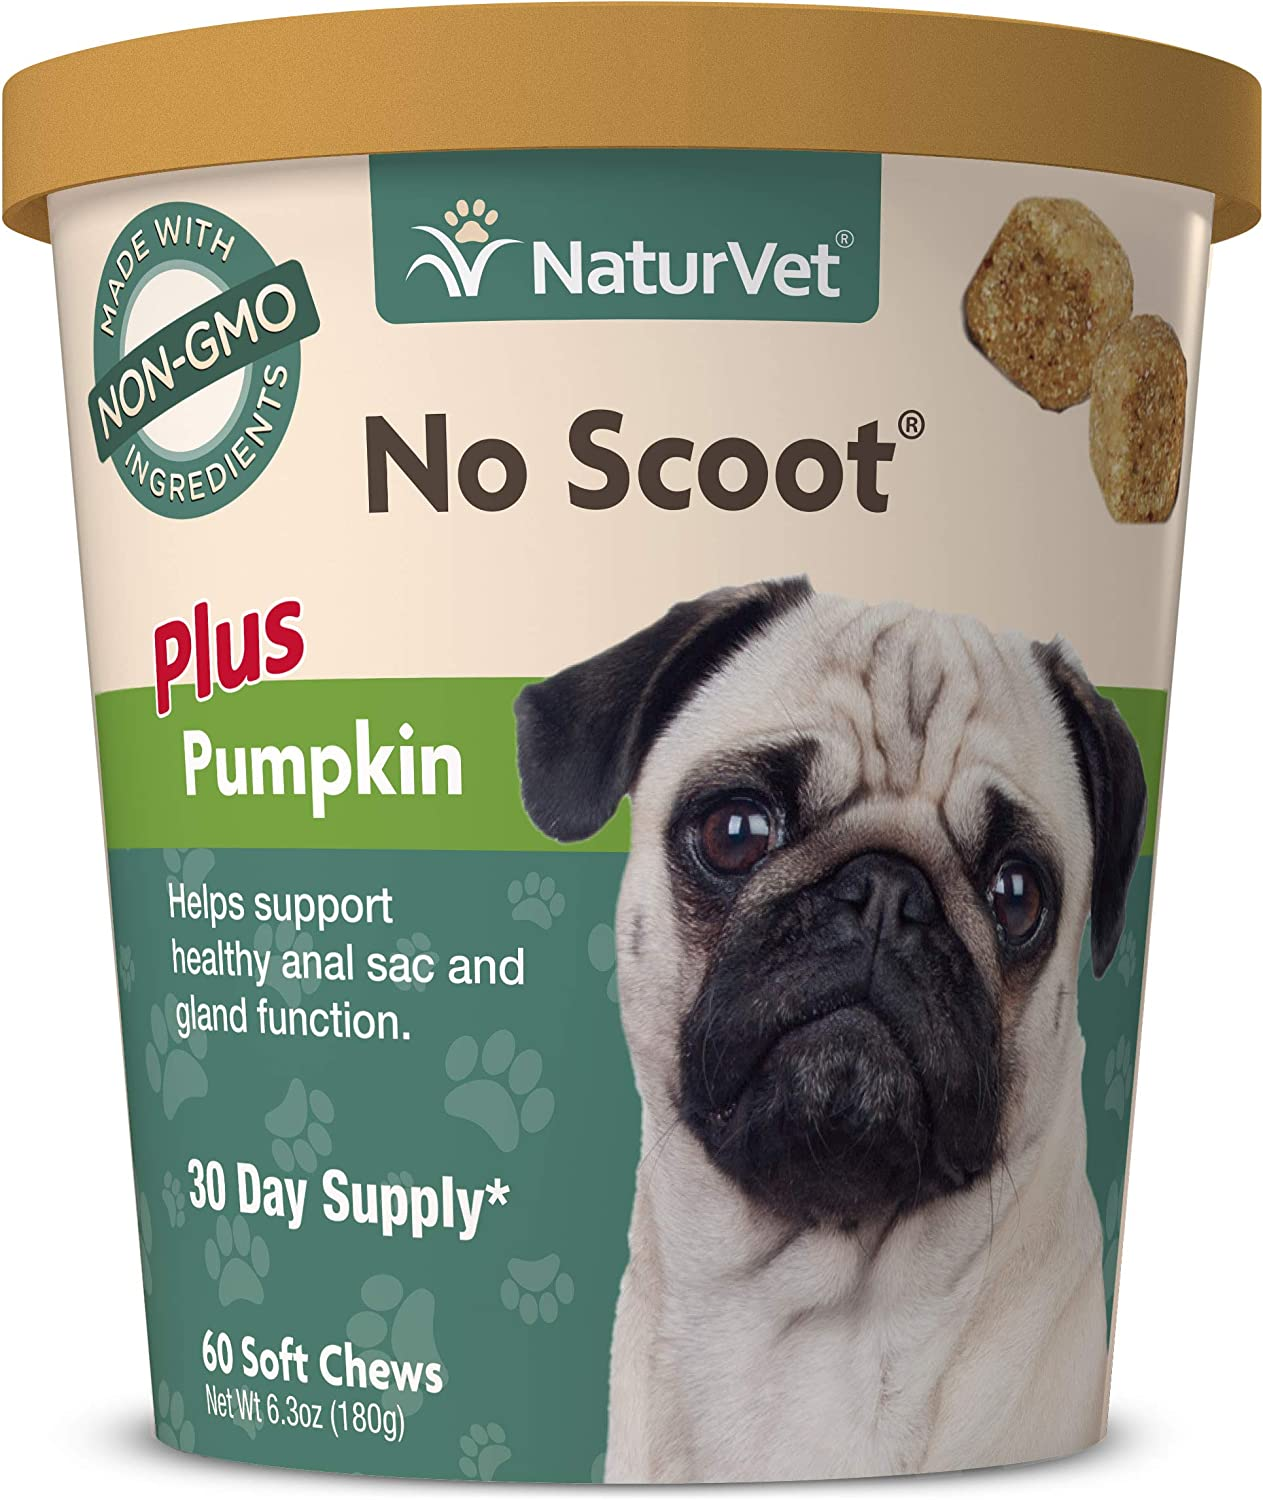 NaturVet - No Scoot for Dogs - Plus Pumpkin - Supports Healthy Anal Gland & Bowel Function - Enhanced with Beet Pulp & Psyllium Husk